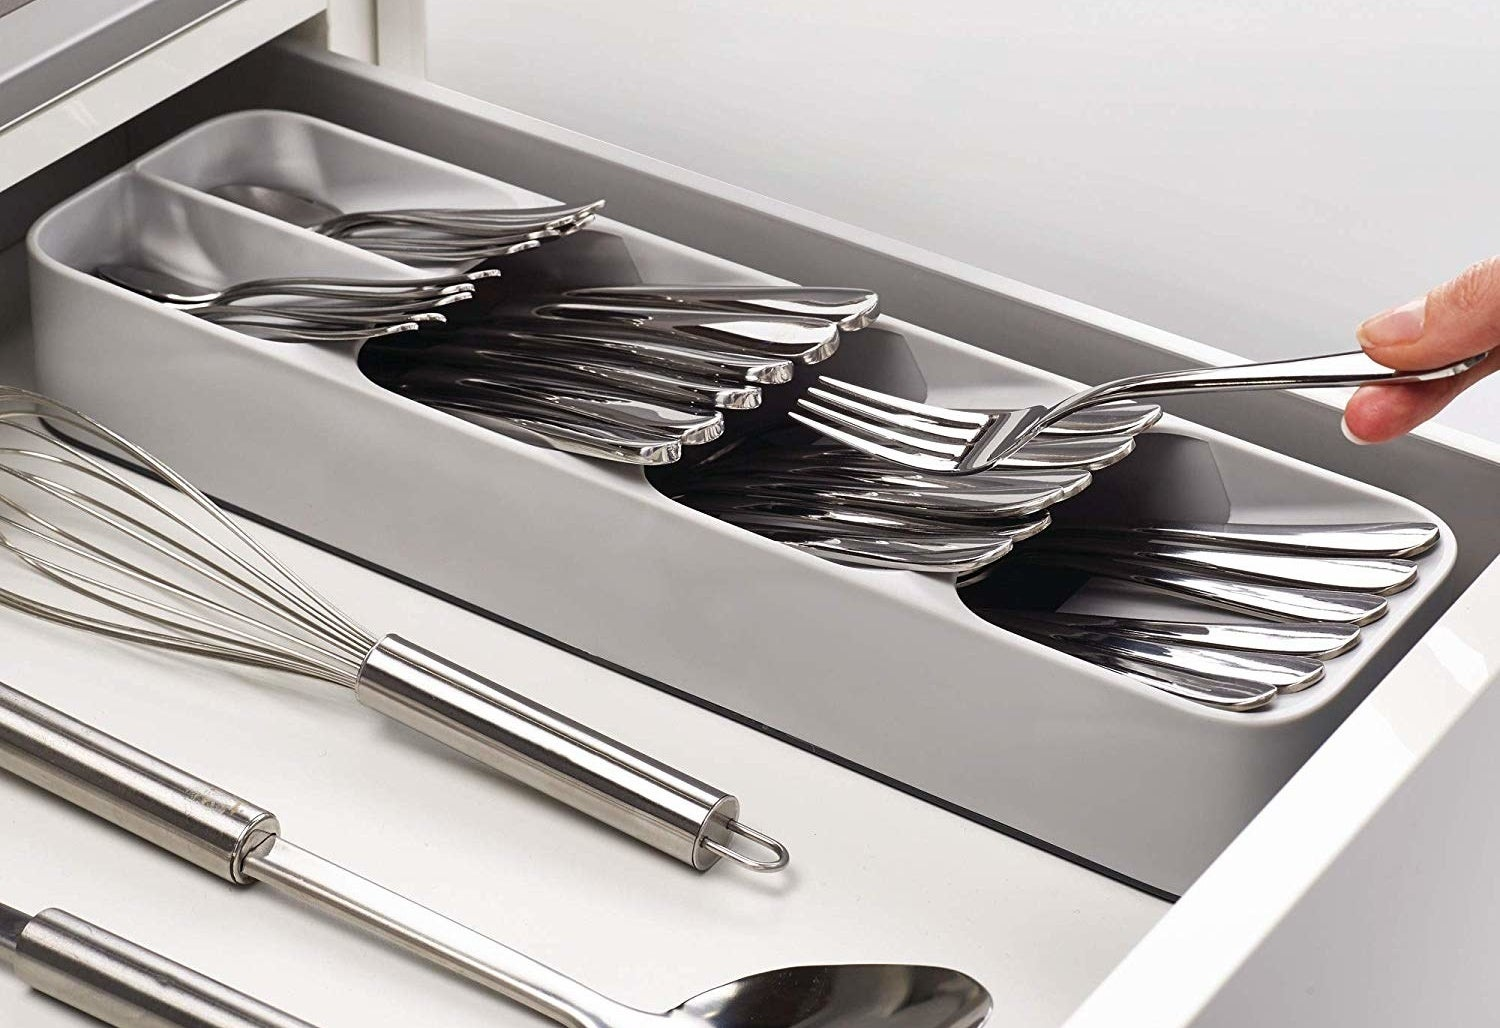 person putting a fork into the cutlery organizer